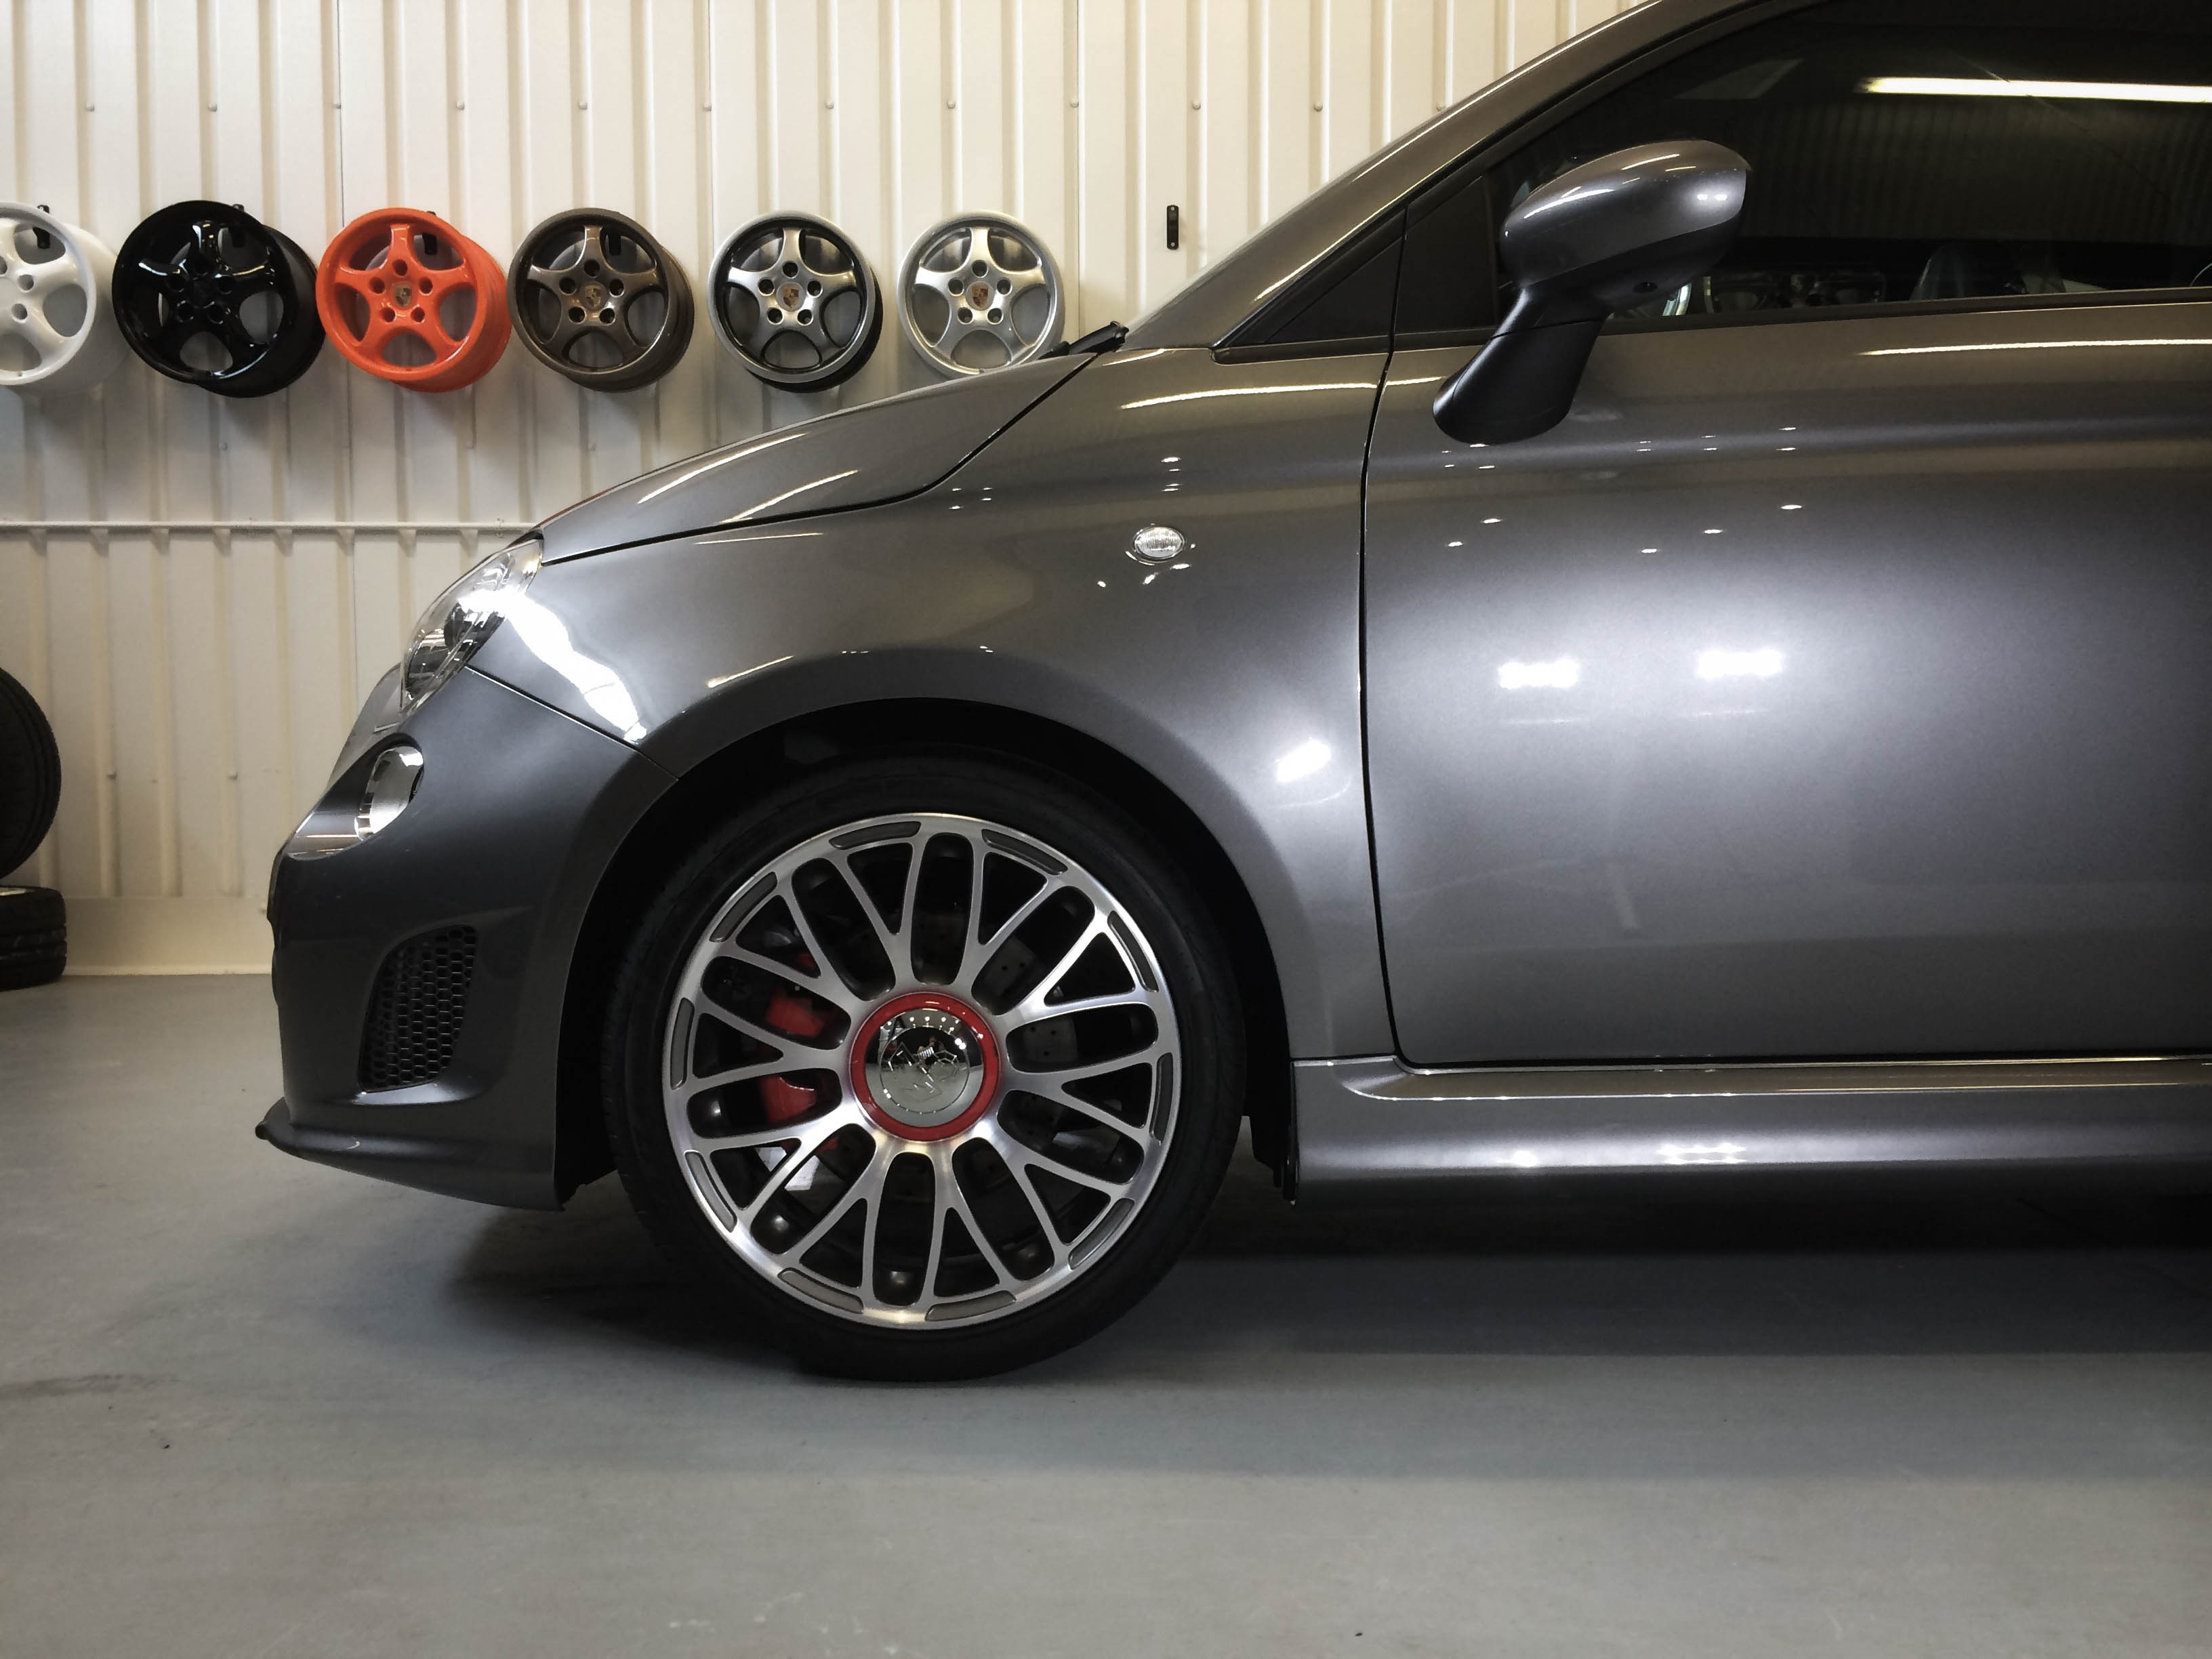 Fiat Abarth – Wheel